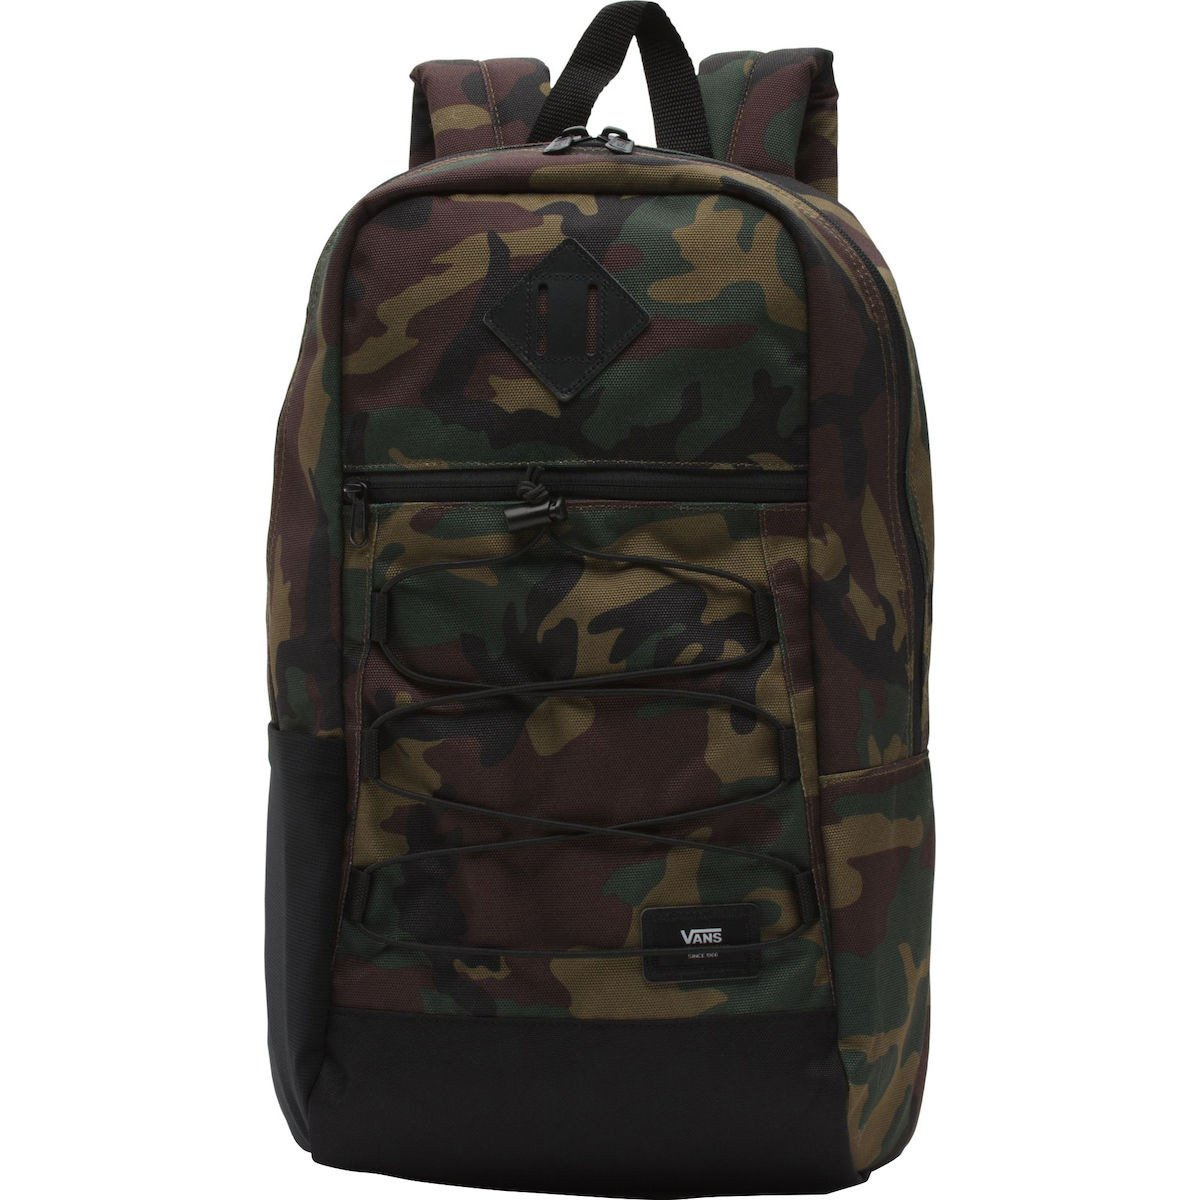 VANS Mn Snag Backpack - VN0A3HCB97 381 VN0A3HCB97I 381  9619f16284